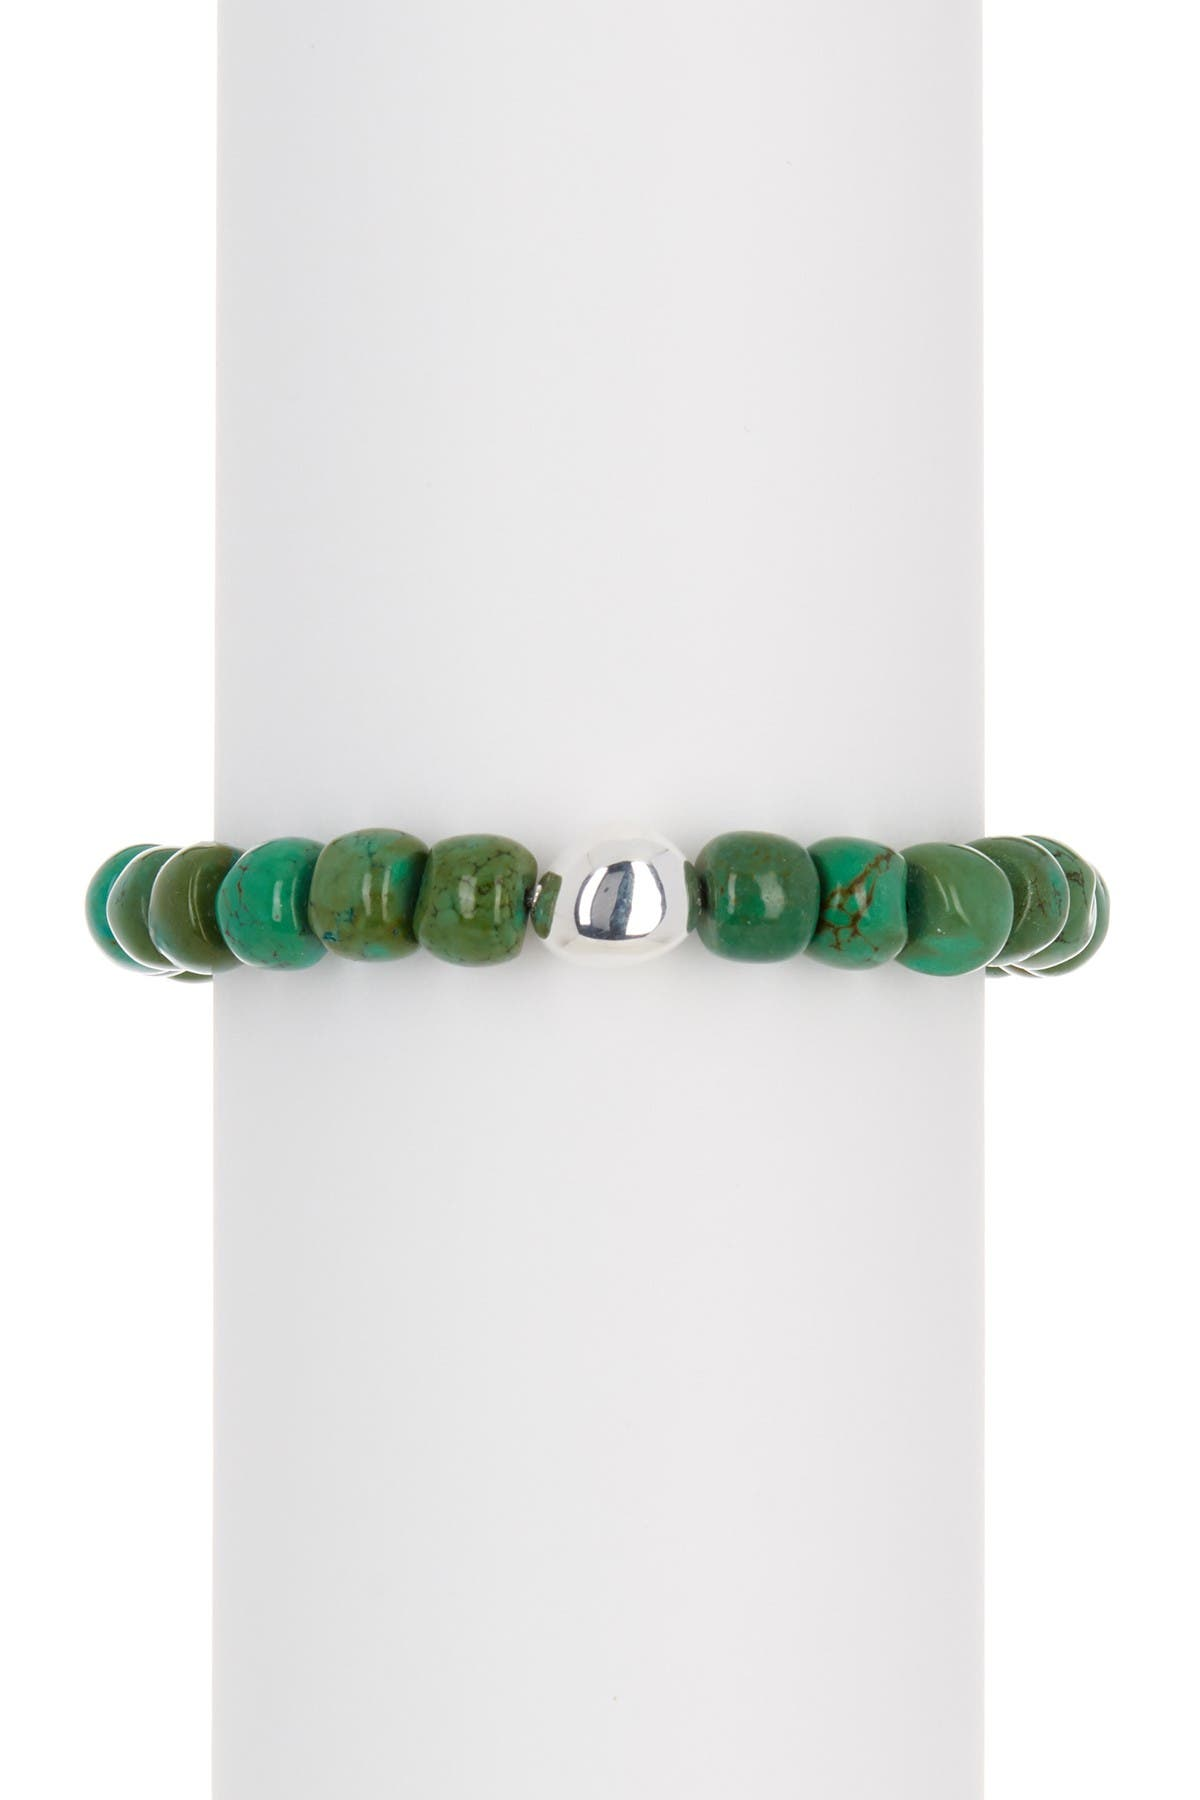 Image of SIMON SEBBAG Green Agate Stretch Bracelet